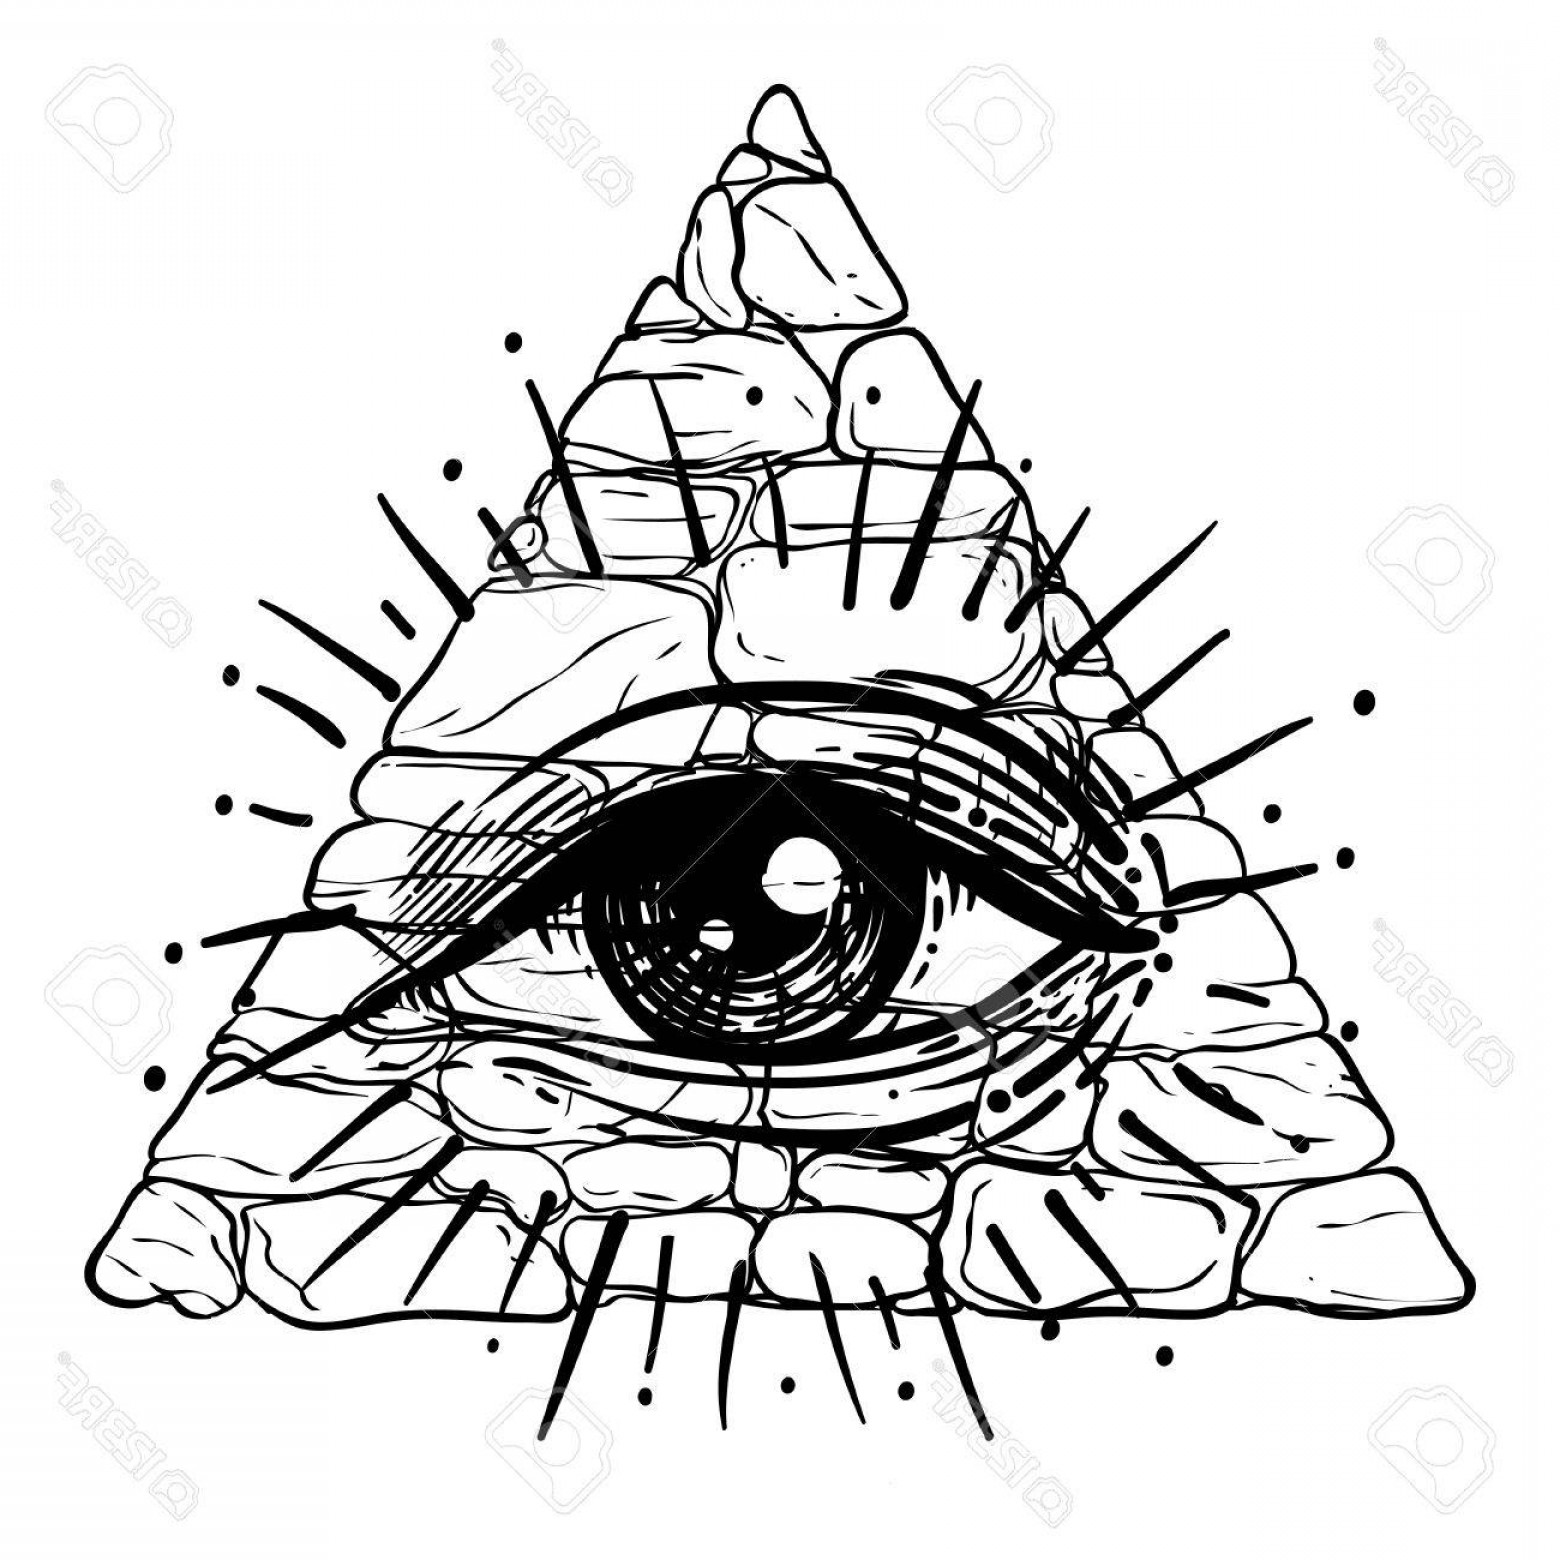 Pyramid With Eye Of Providence Vector: Photostock Vector Eye Of Providence Masonic Symbol All Seeing Eye Inside Triangle Pyramid New World Order Hand Drawn A